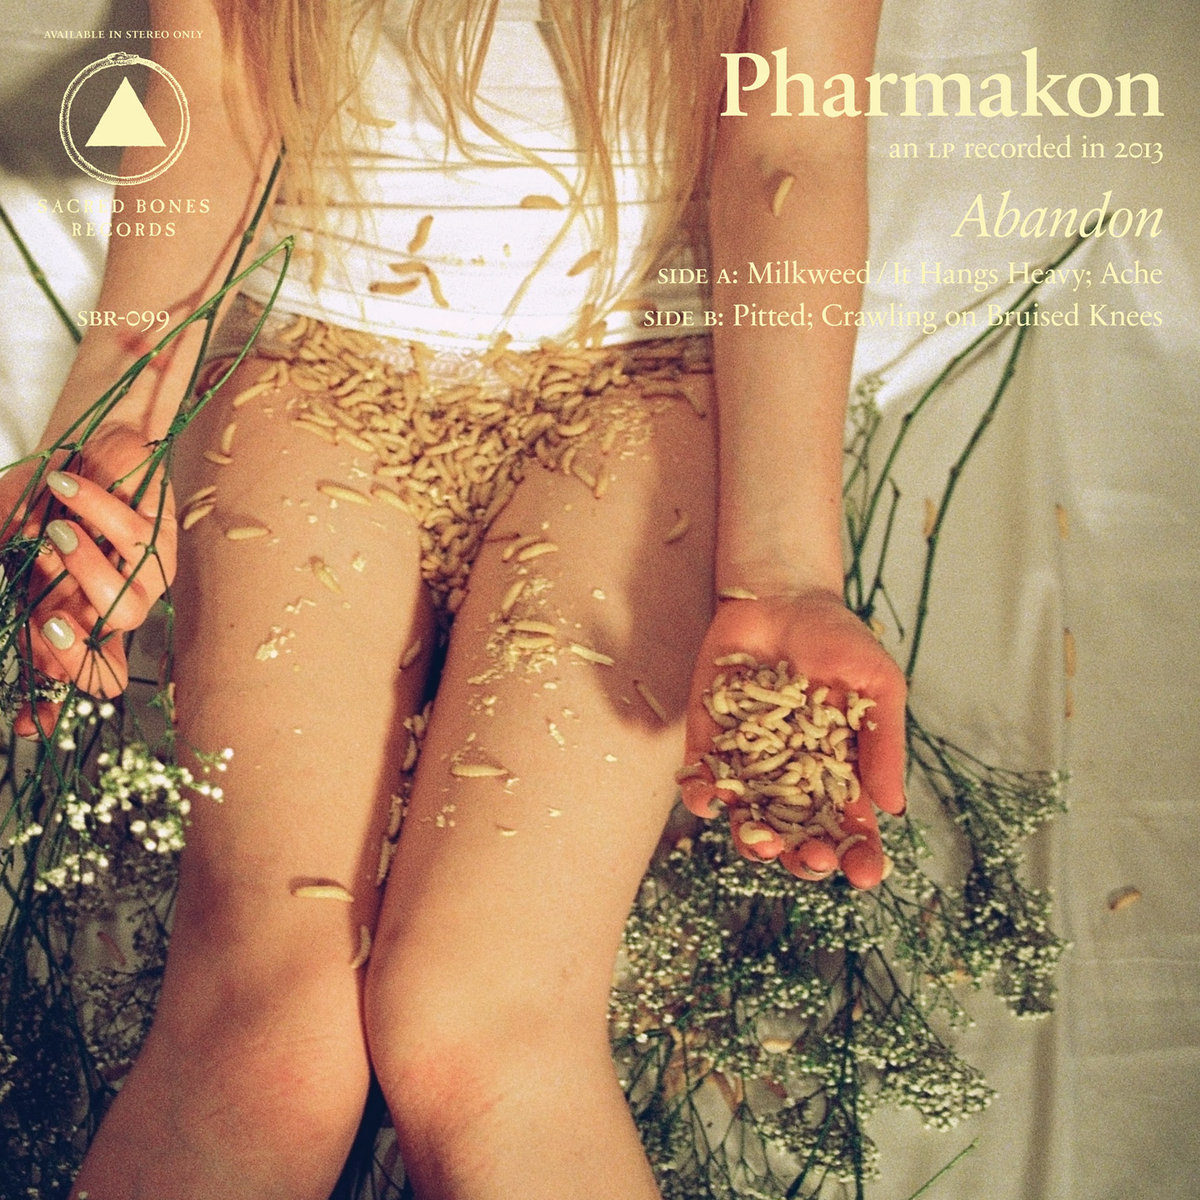 Pharmakon Abandon review